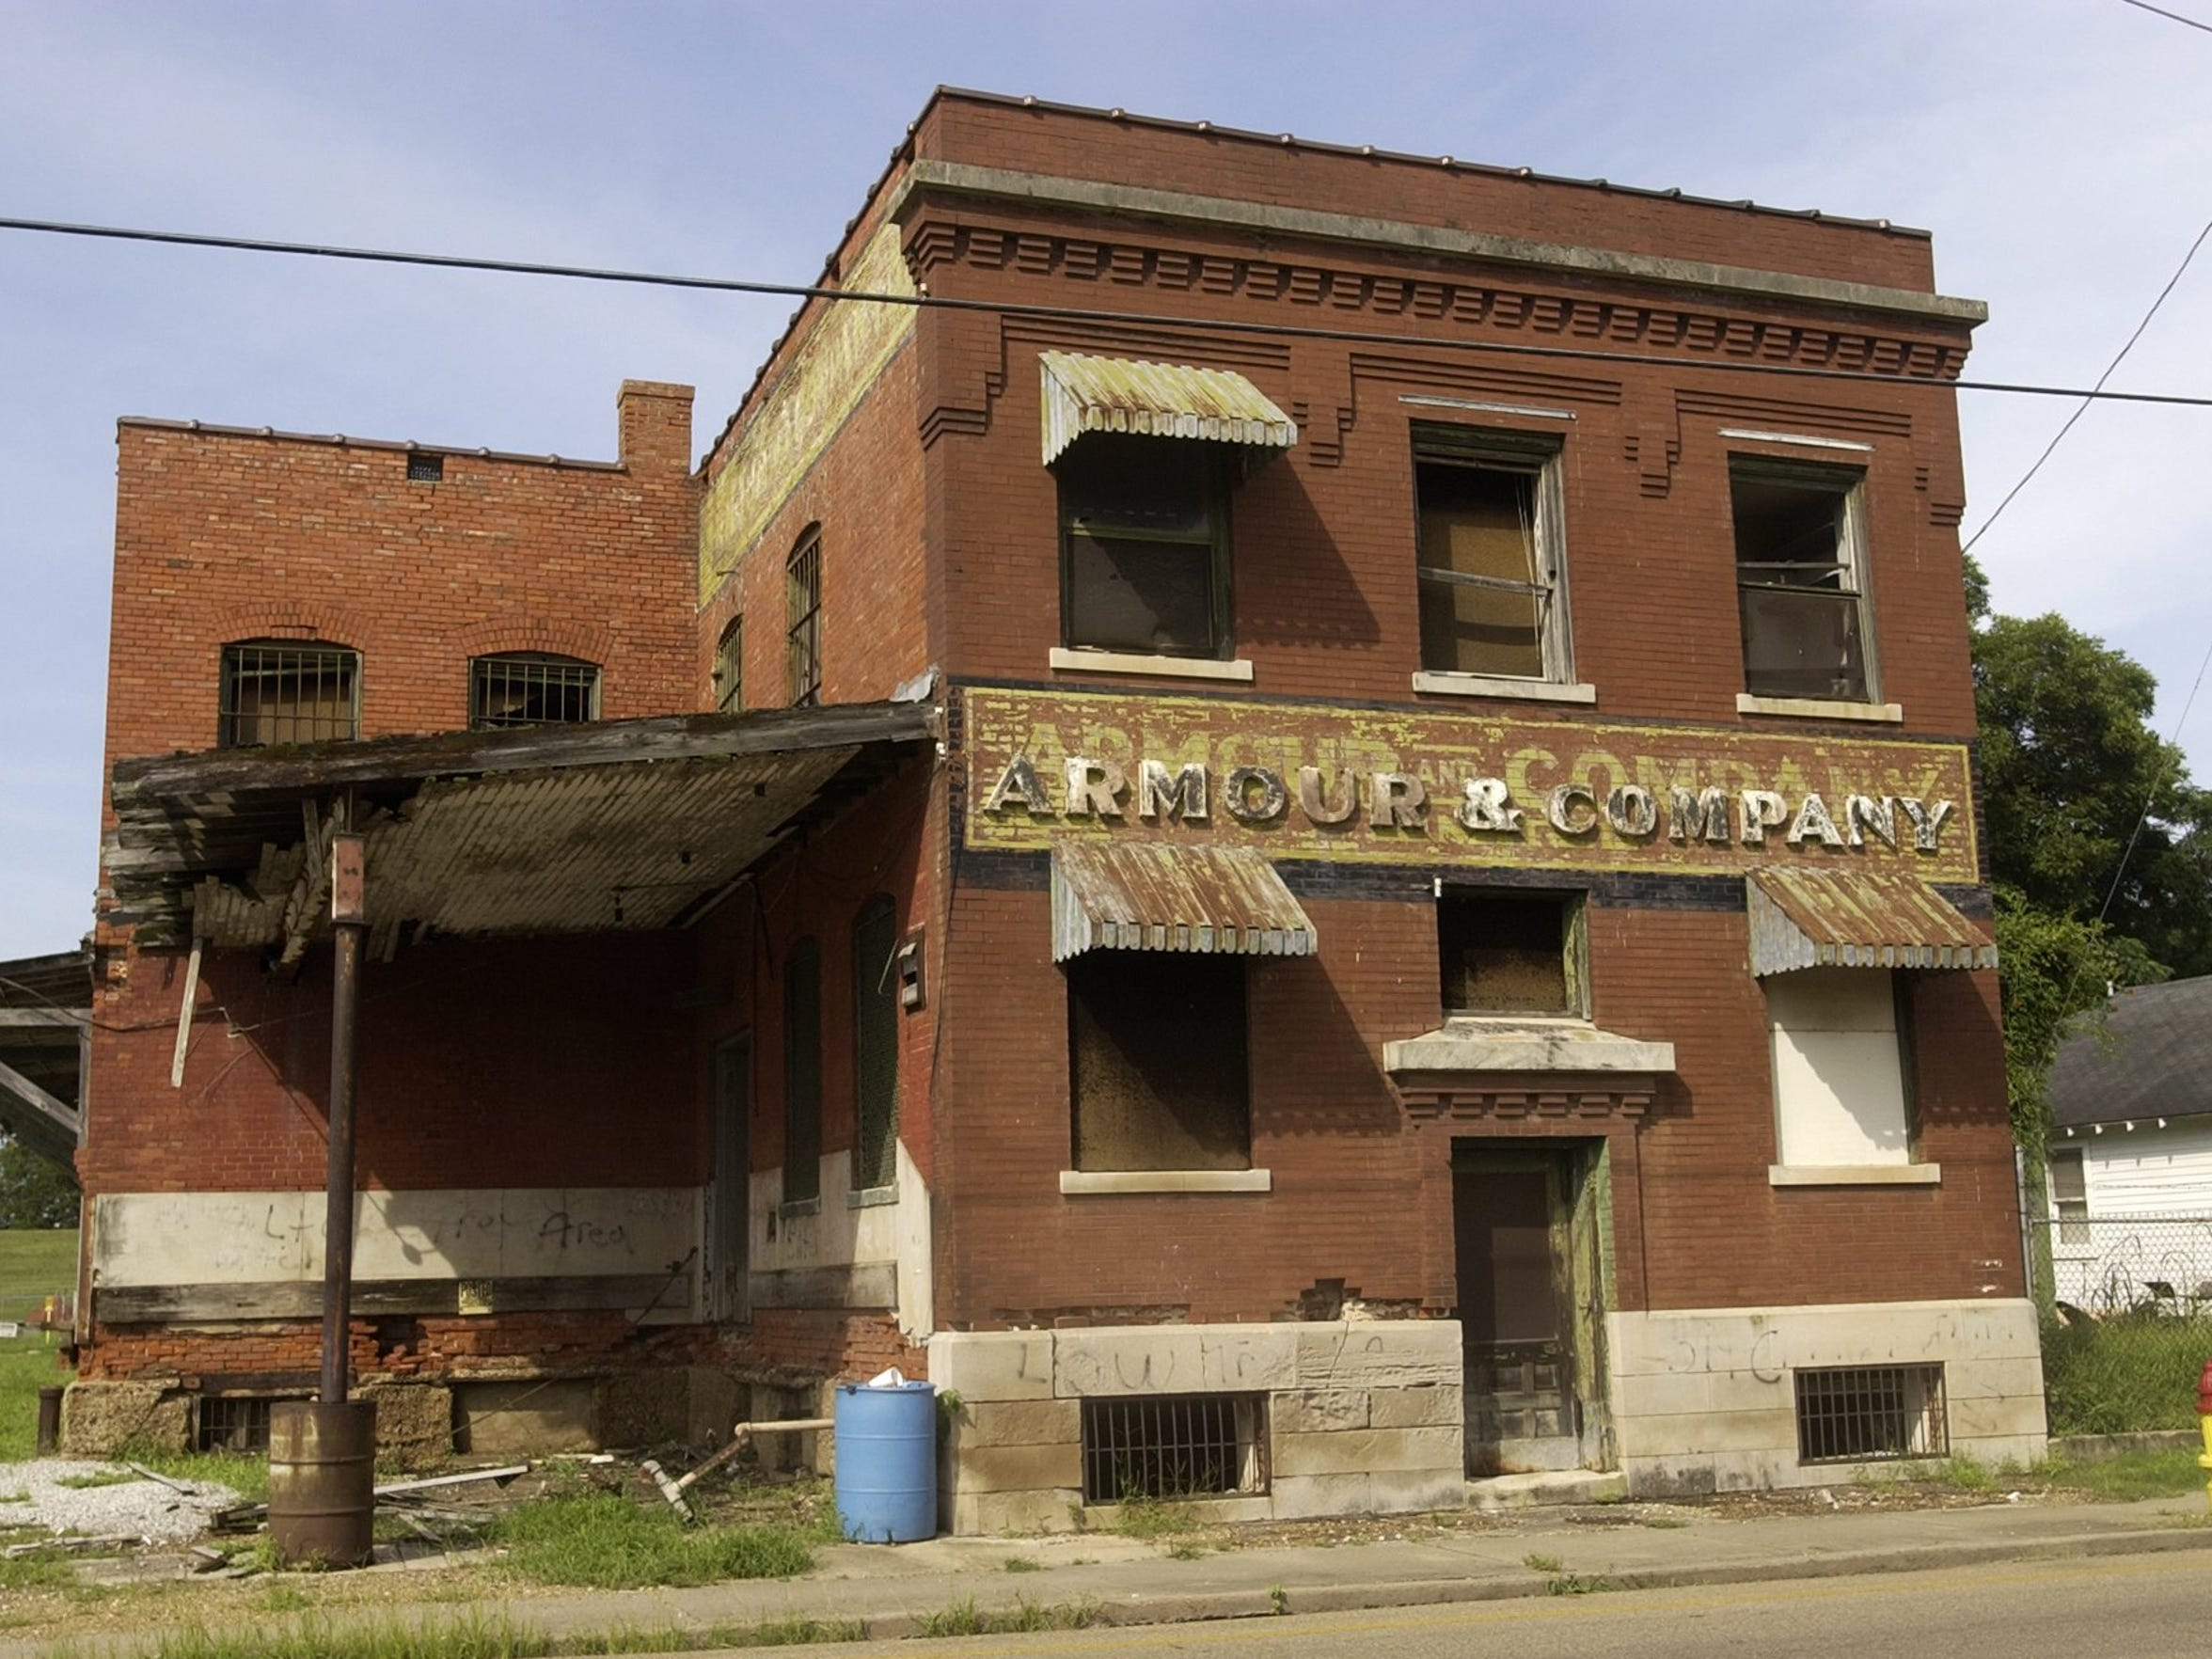 The Armour Building on 3rd Street in Alexandria was demolished in 2012.